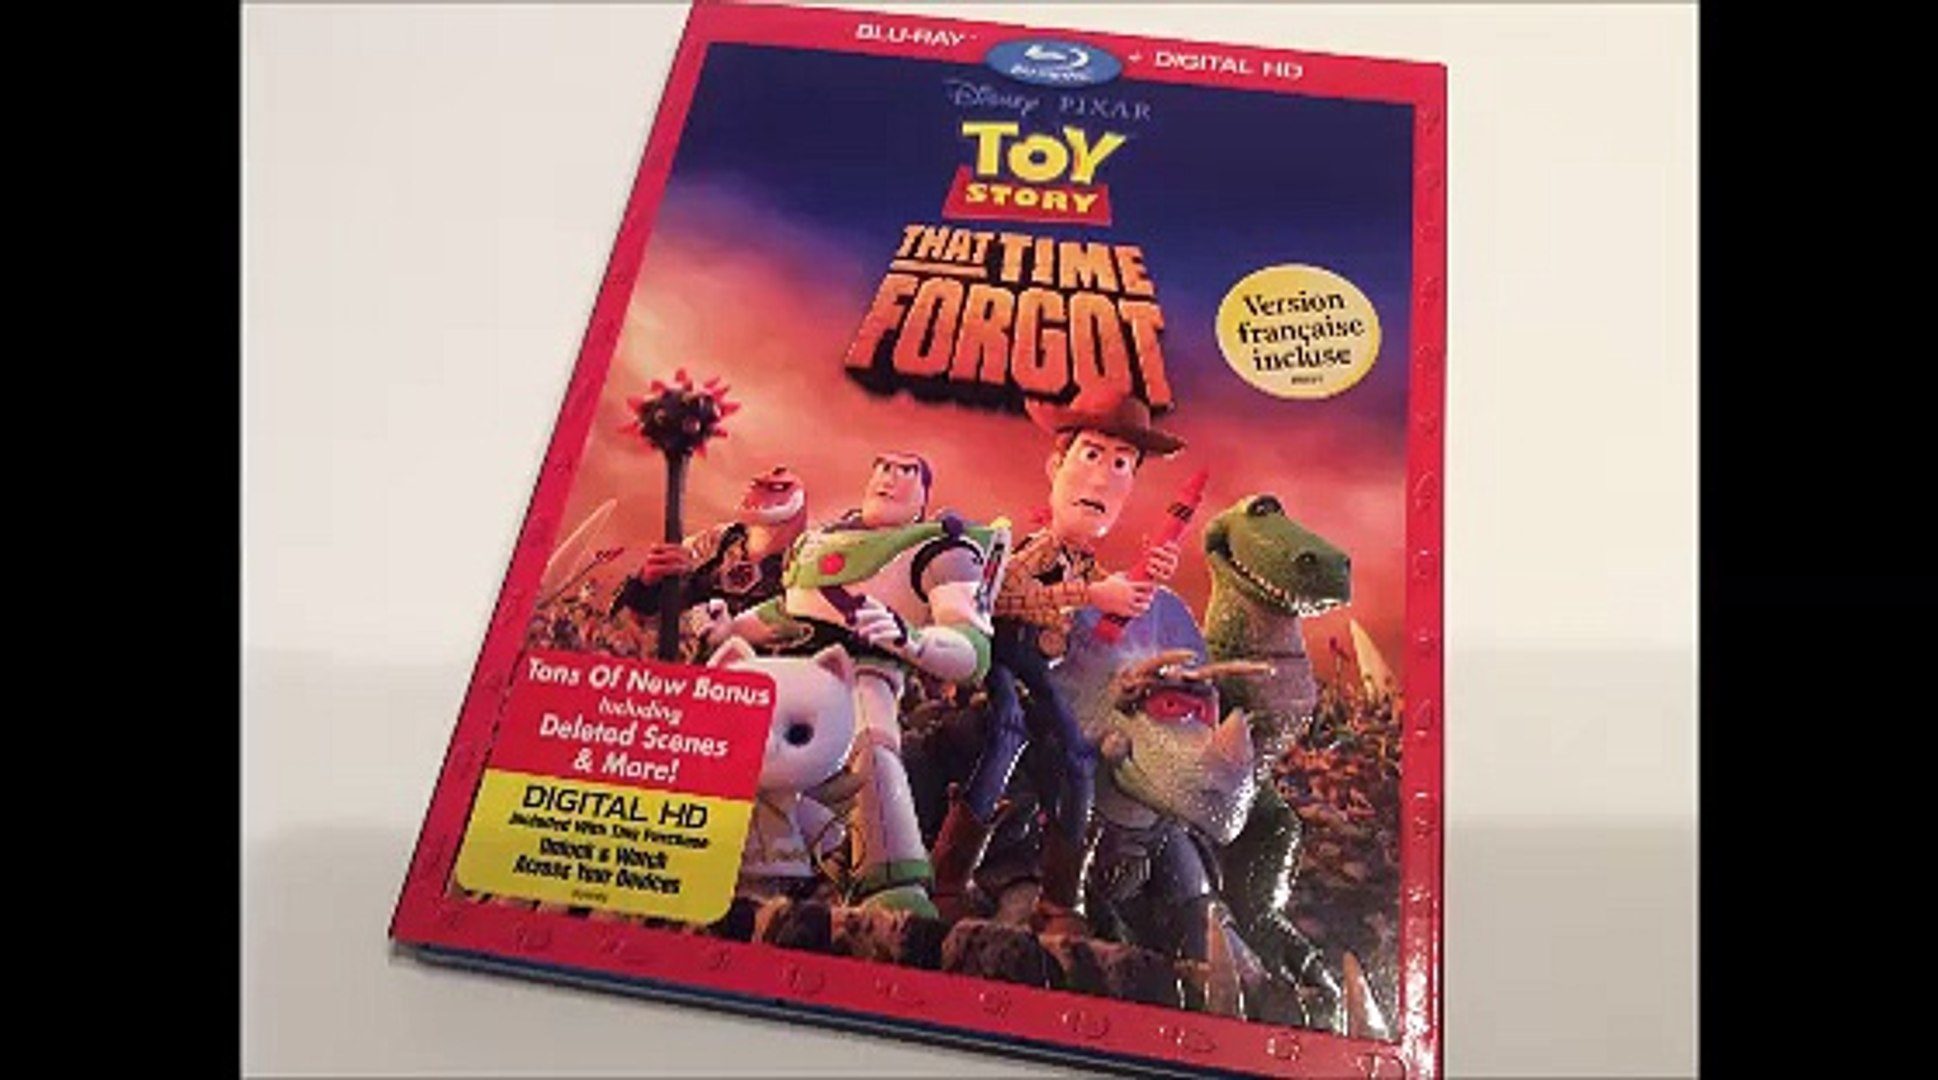 Critique Blu-ray Toy Story That Time ForgotCritique Blu-ray Toy Story That Time Forgot par Sébastien